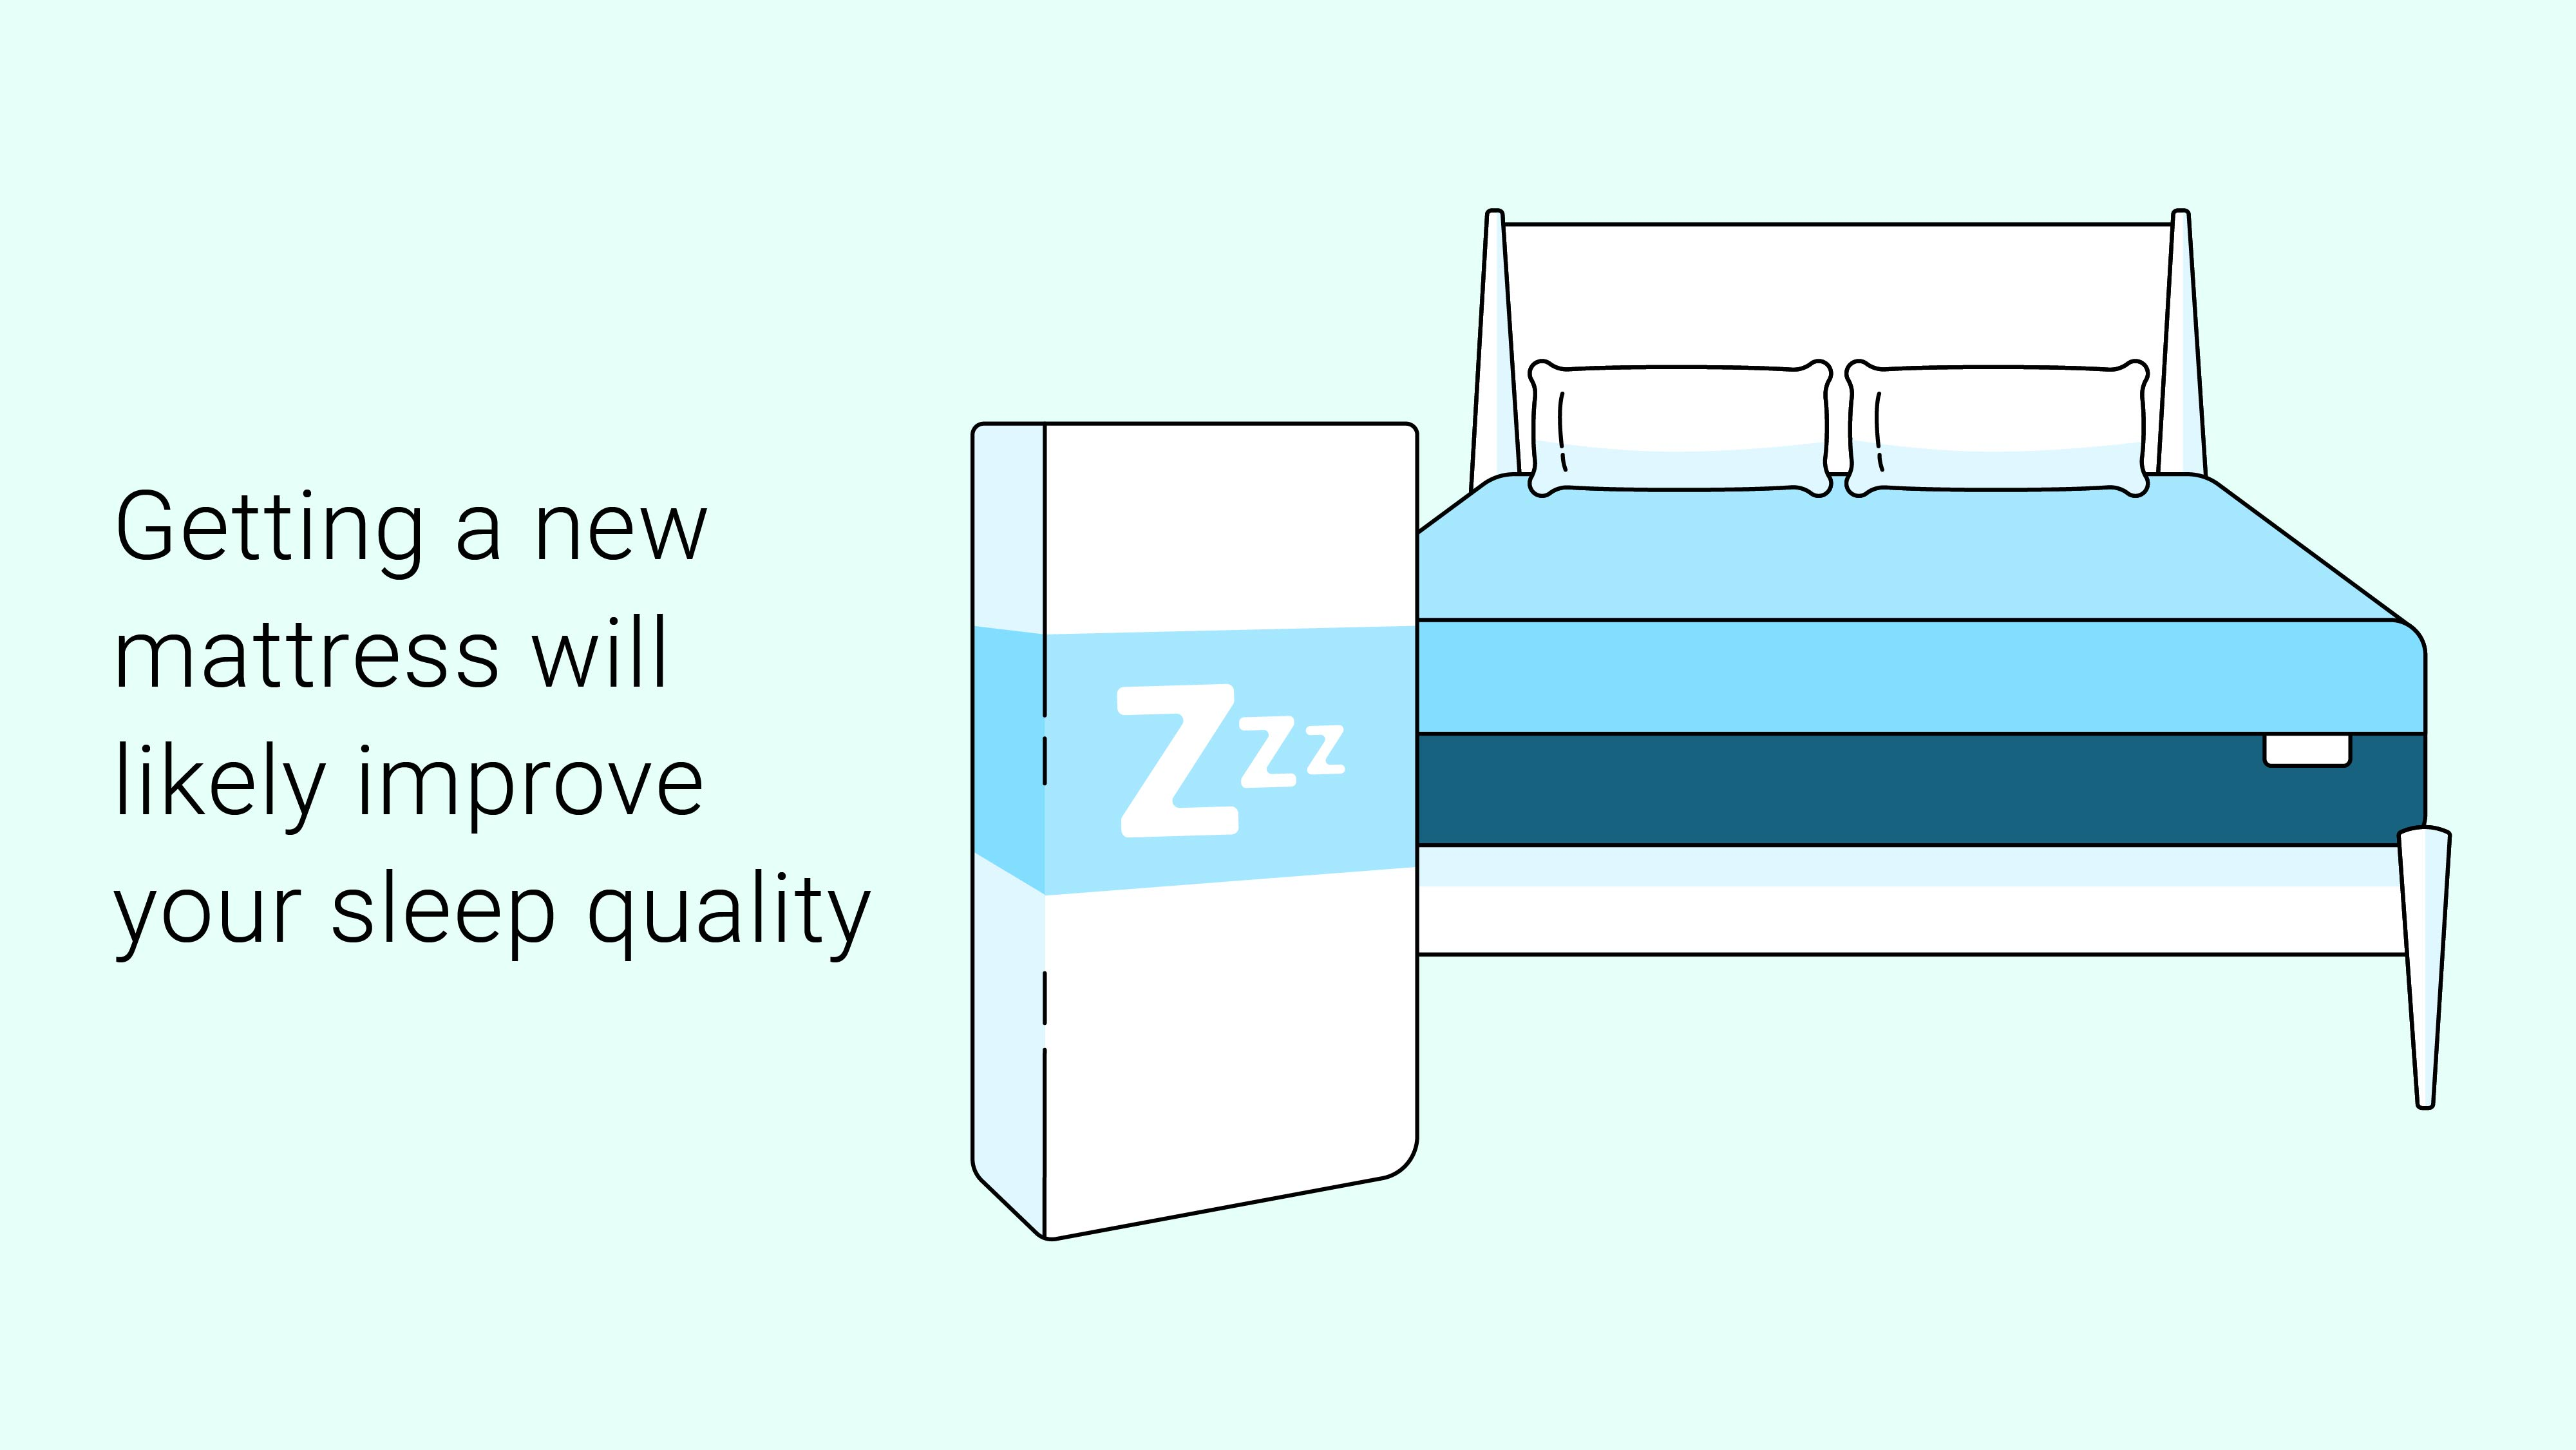 new mattress and sleep quality